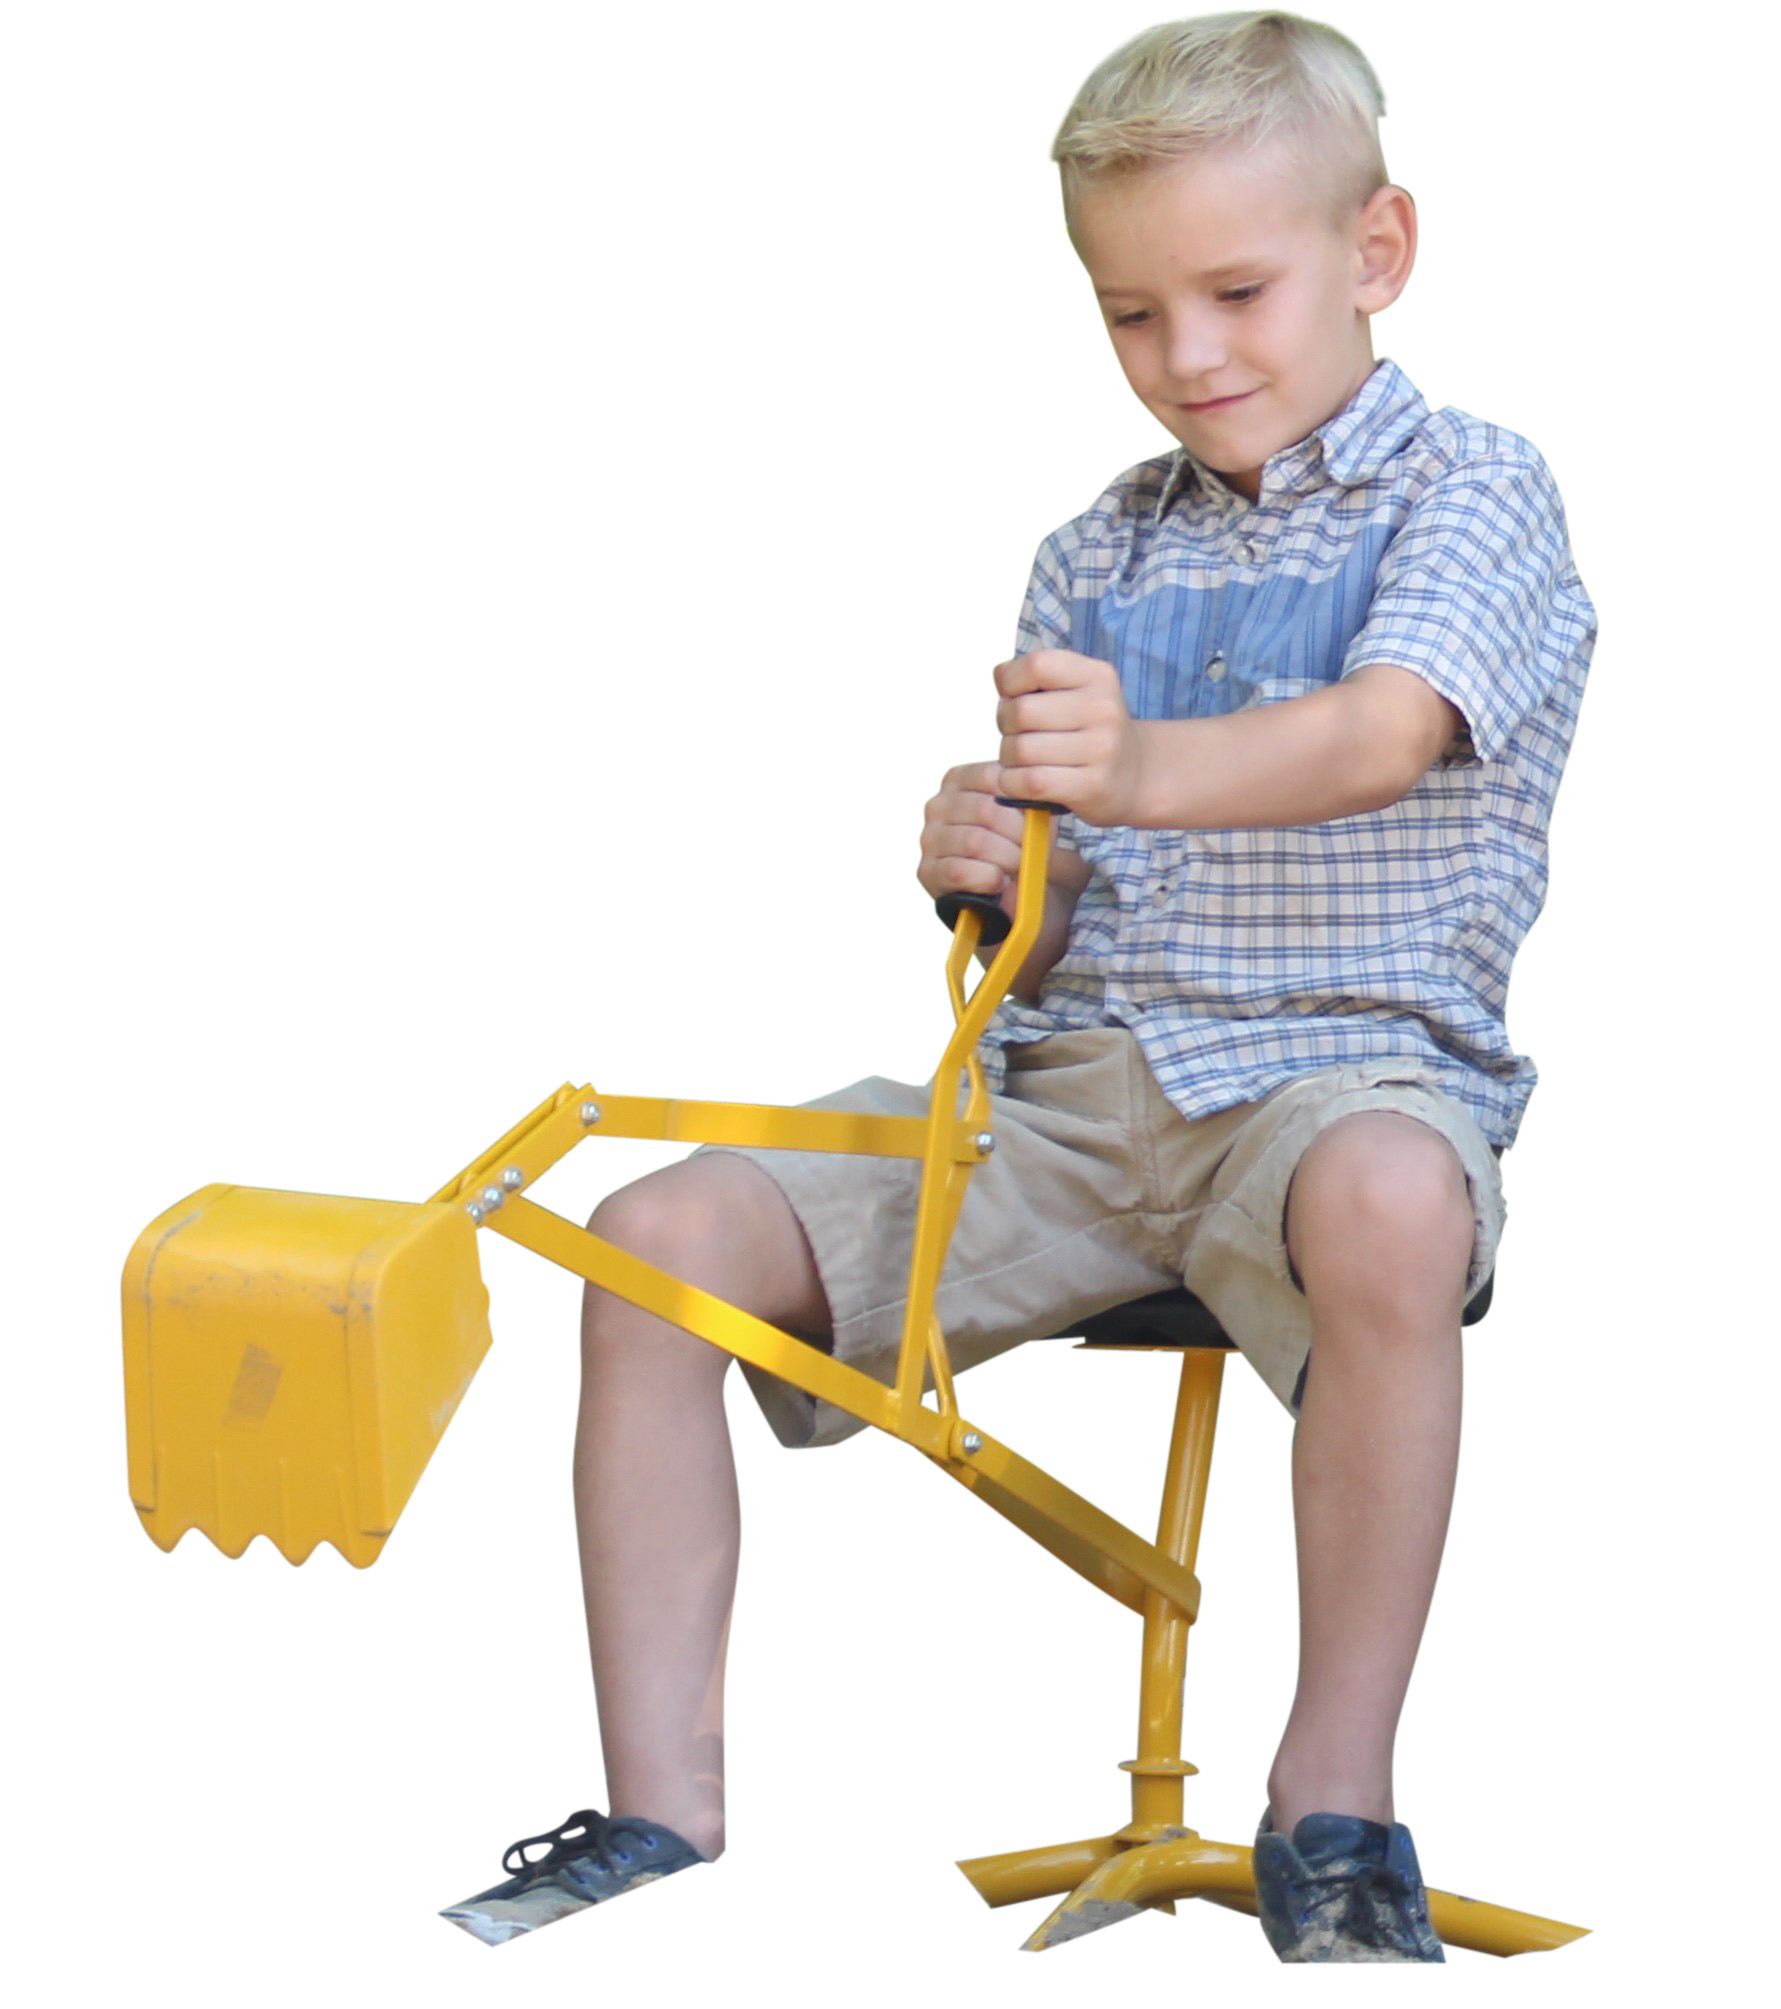 Kid Digger a Toy ride-on Backhoe for Sandbox and Beach by Childrensneeds.com (yellow) by